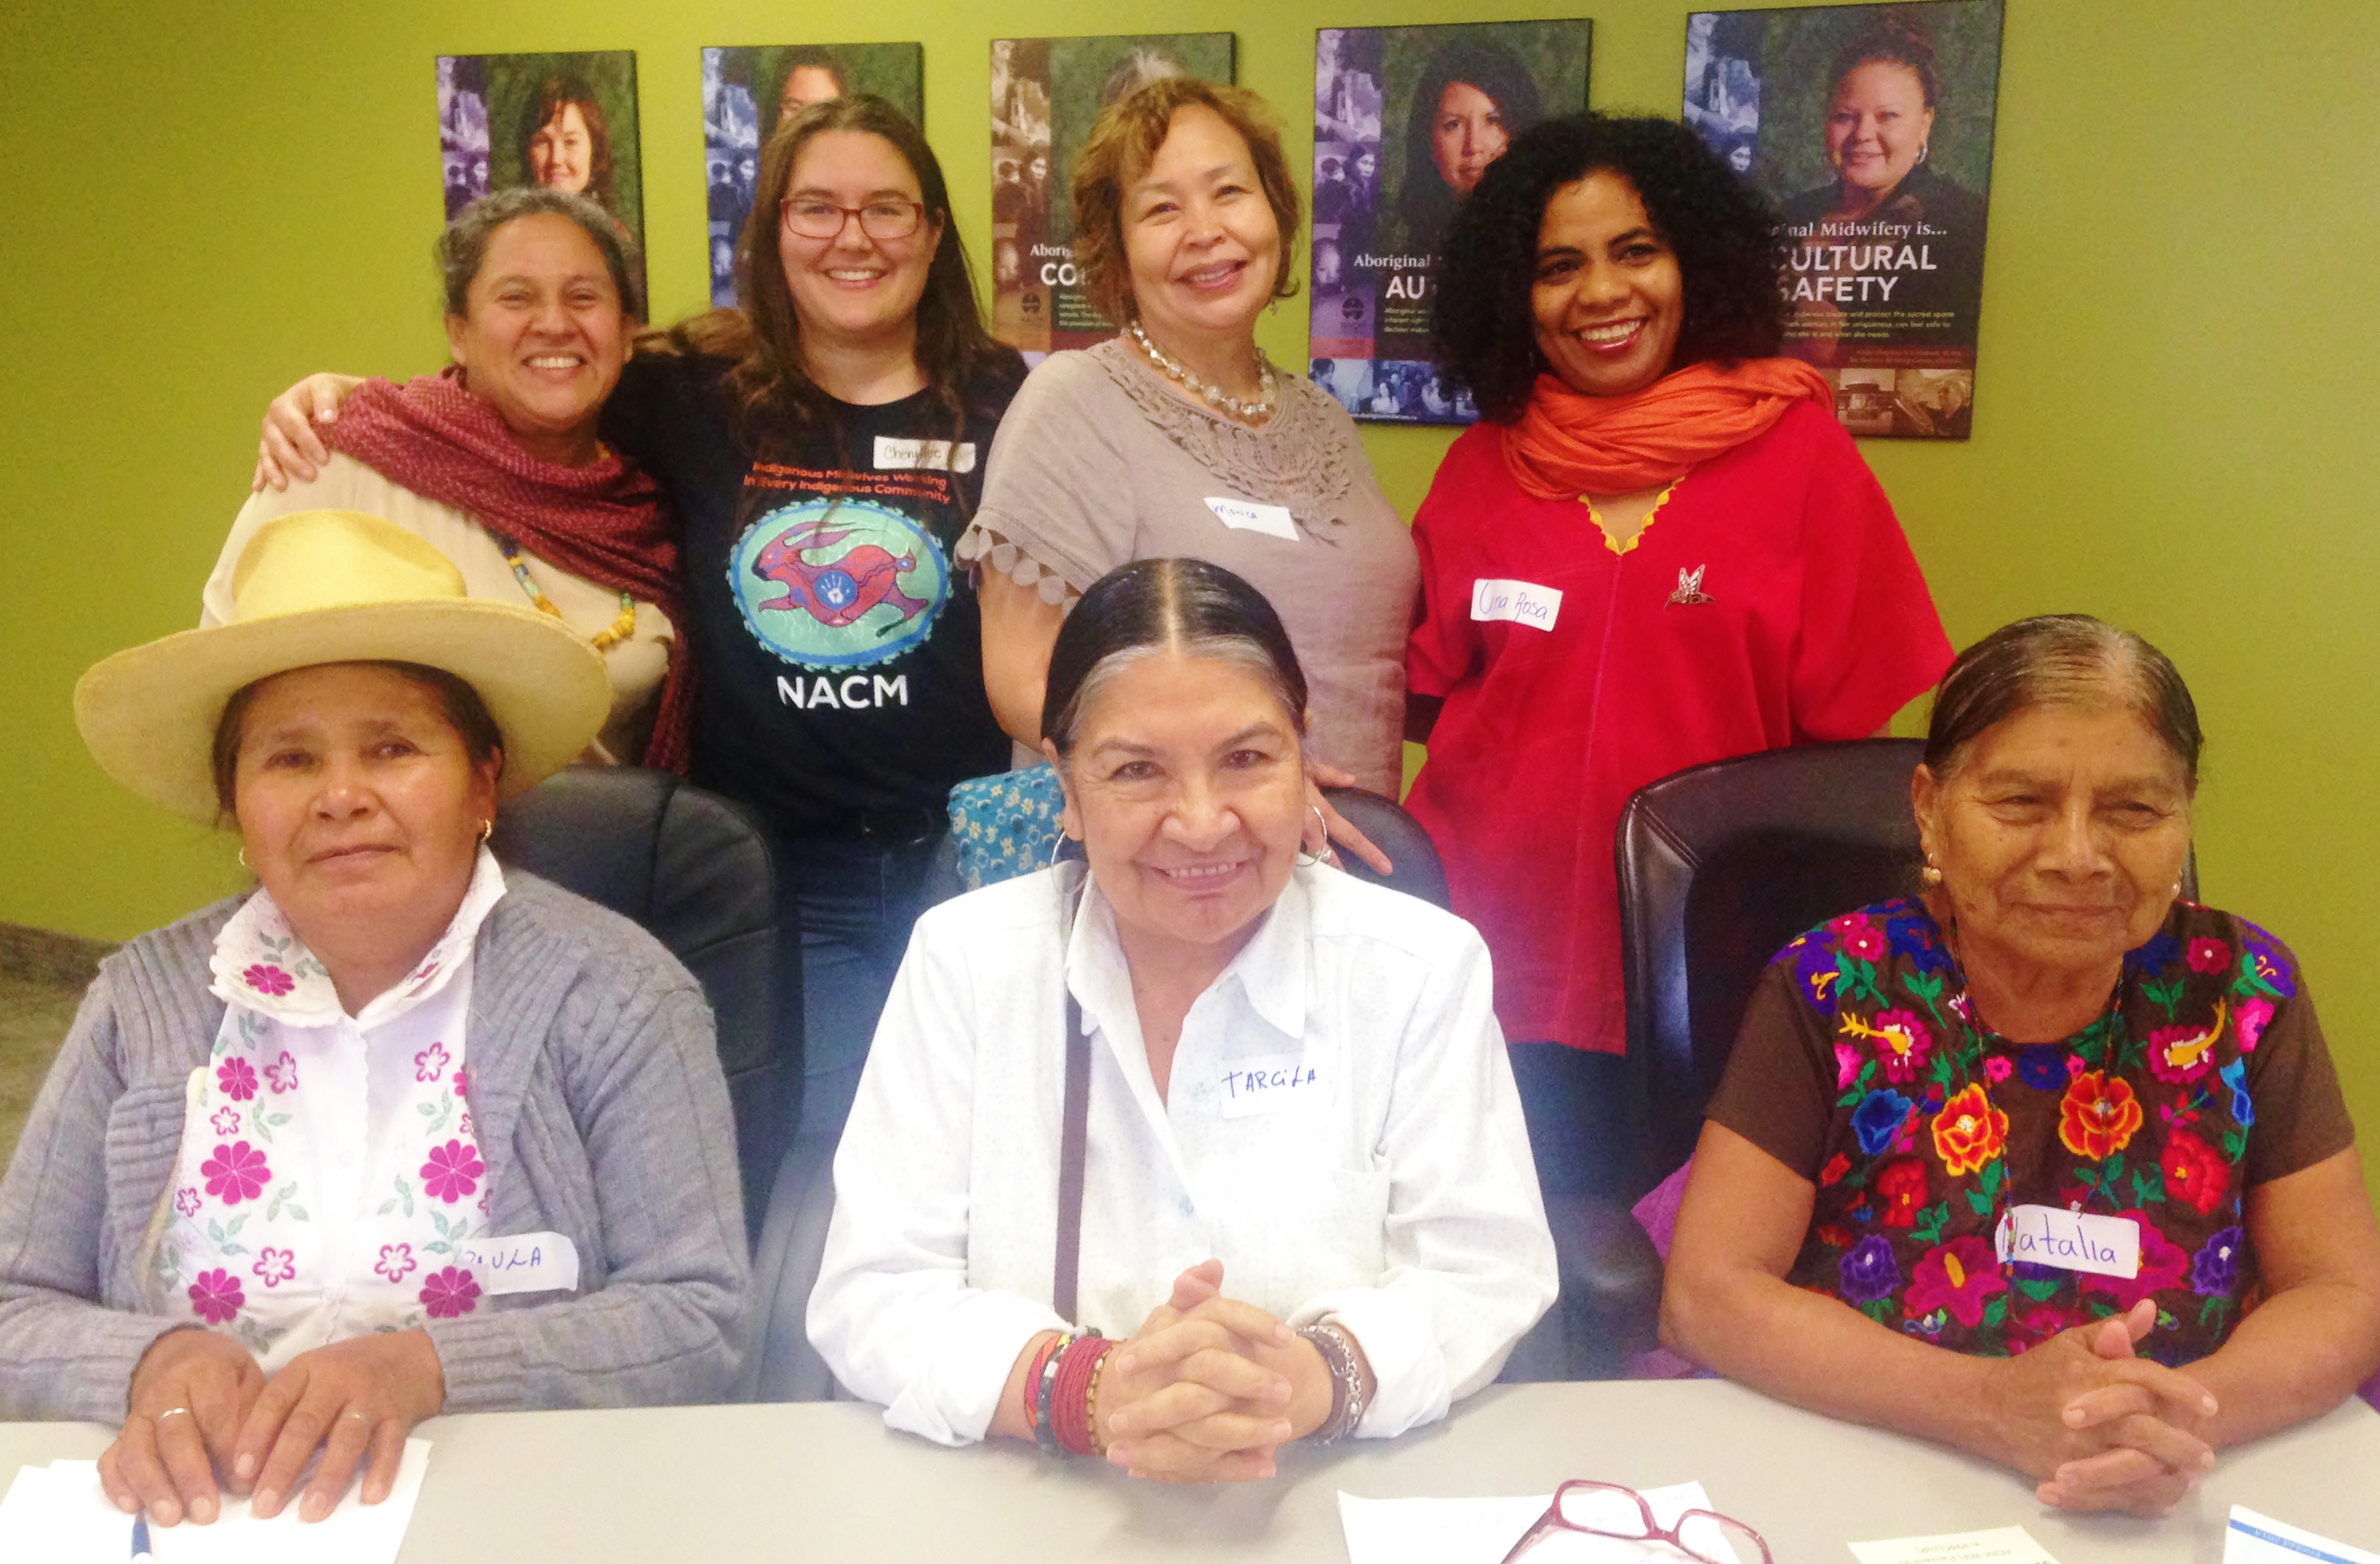 Indigenous midwives from Canada, Peru and Mexico gather in Toronto at the International Congress of Midwives.